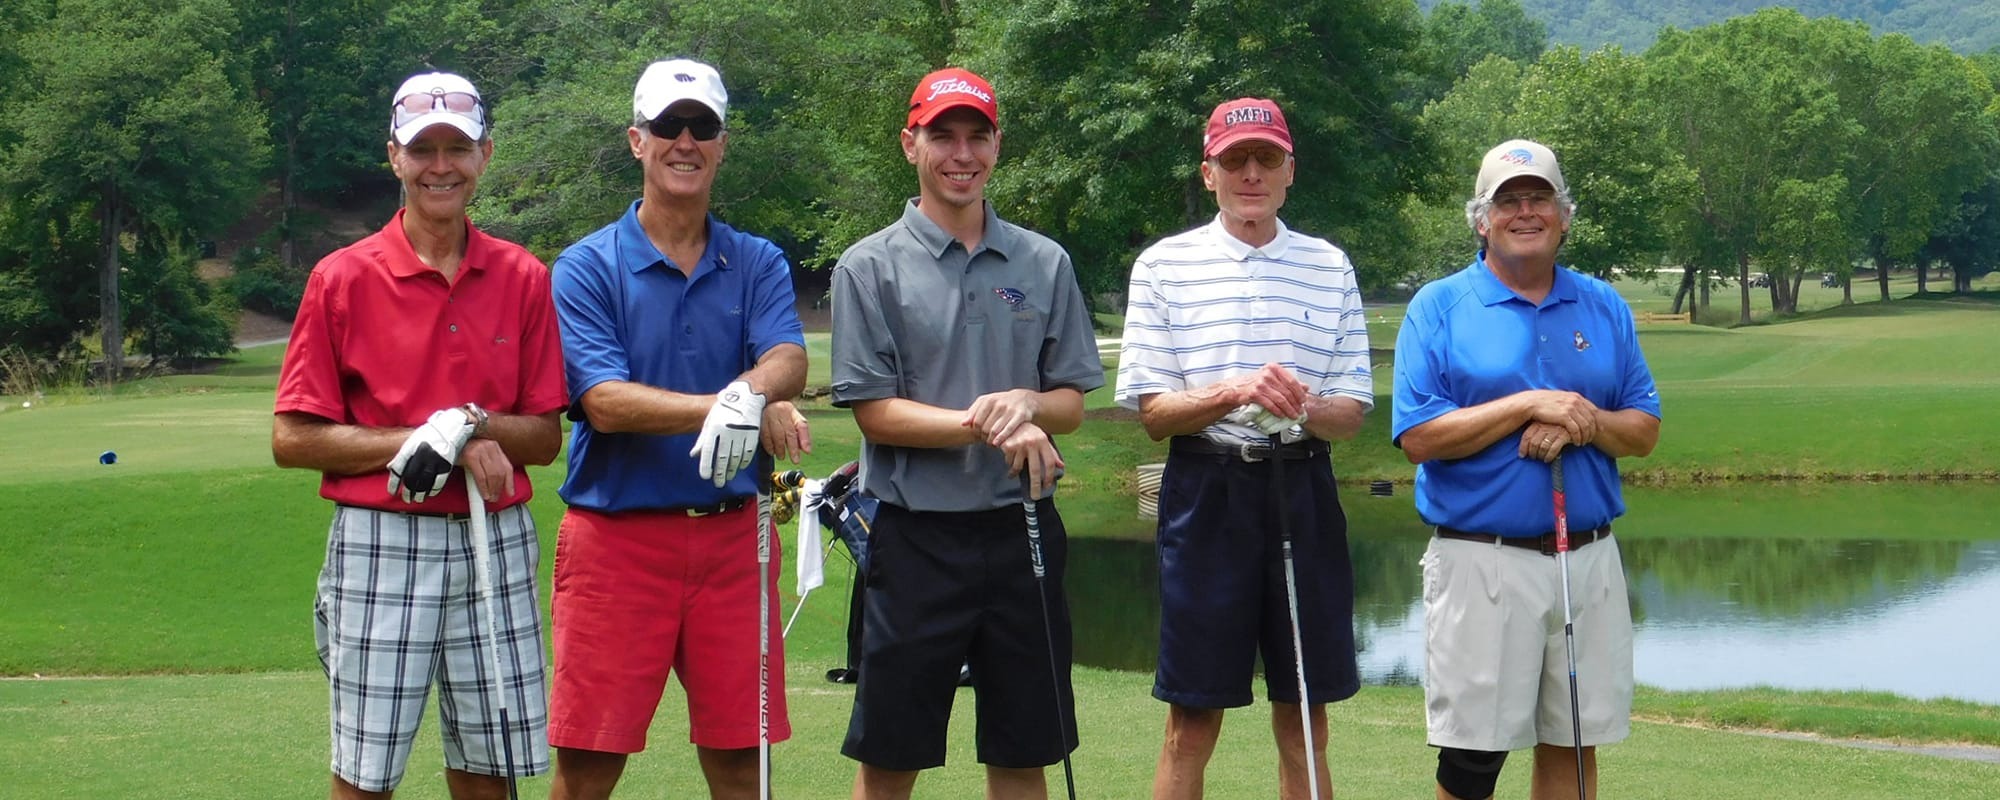 Another supportive group of golfers